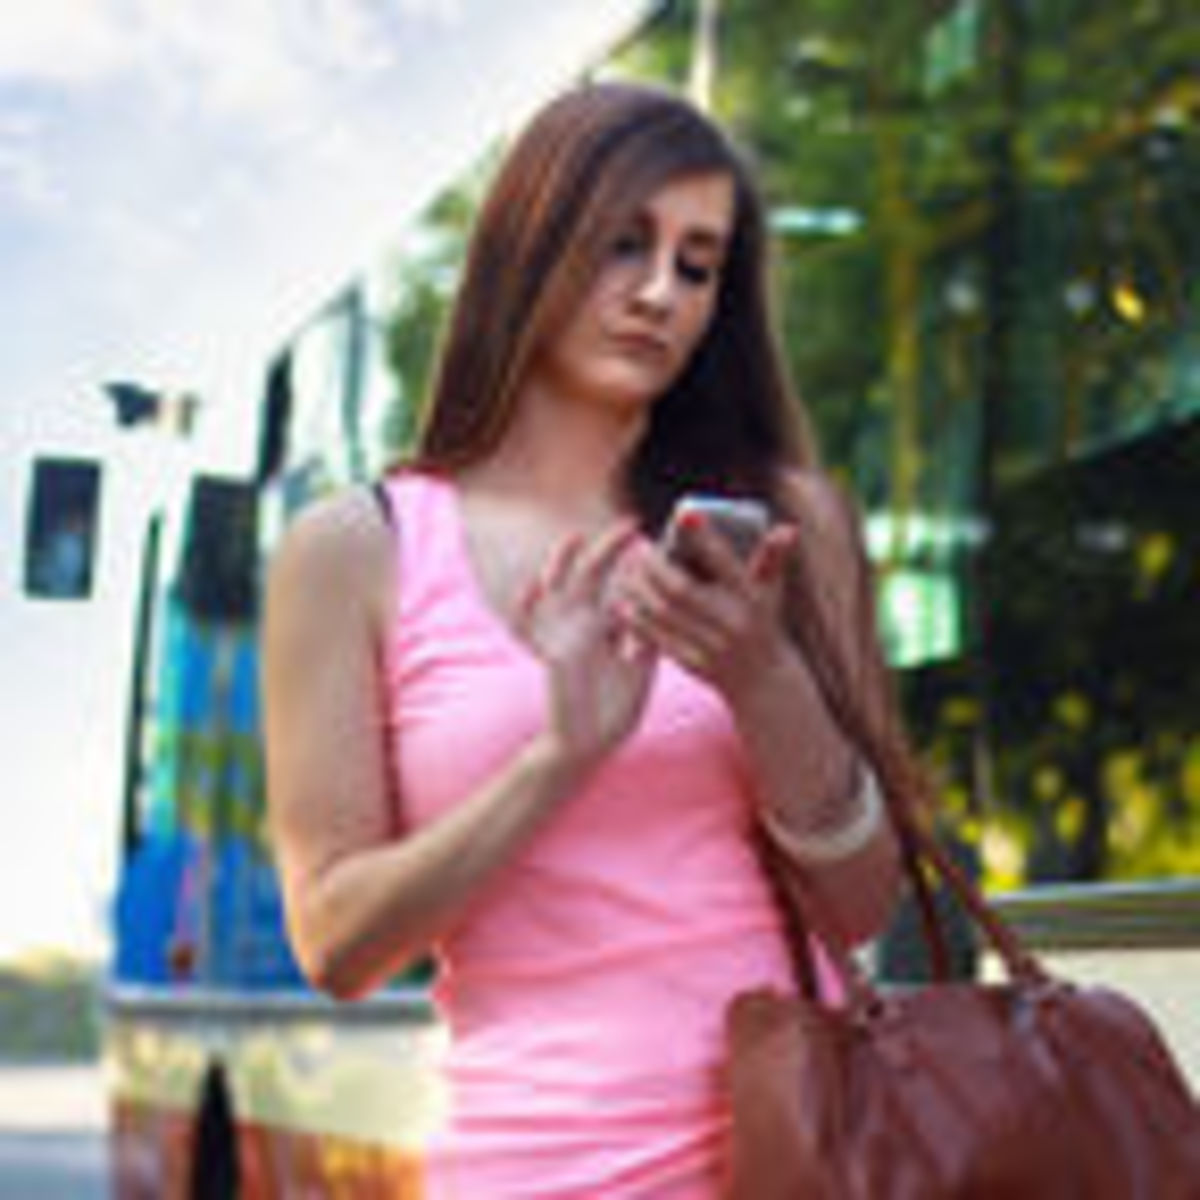 Is Constant Texting Good or Bad for Your Relationship